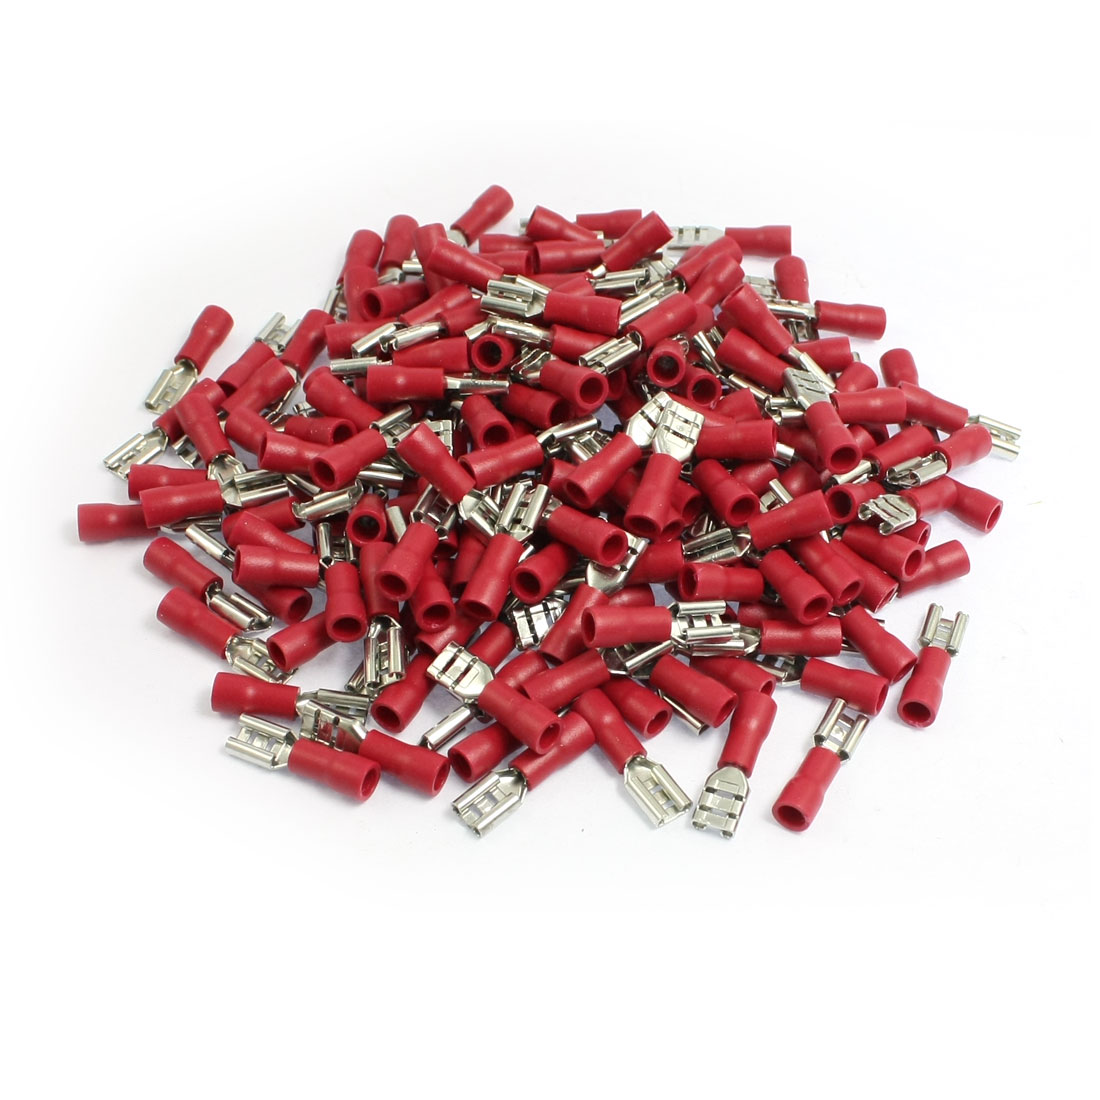 200 Pcs 5.6mm Spade Width Red Pre Insulated Spade Crimp Terminals